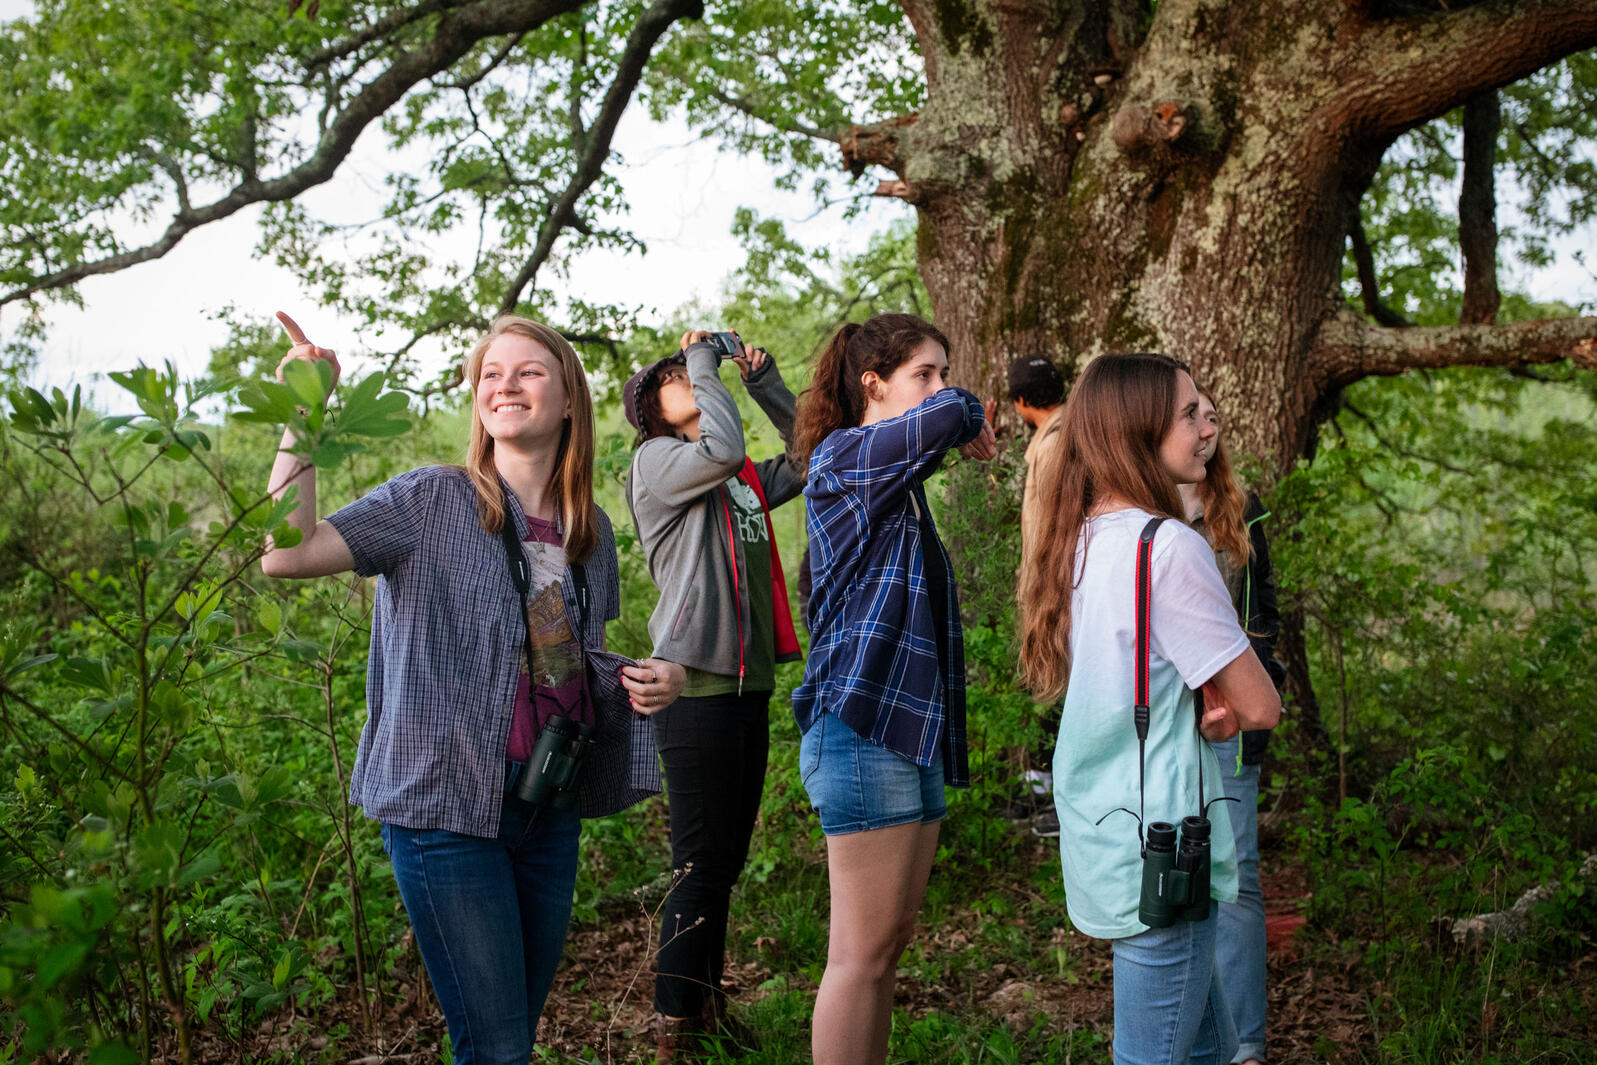 Students with the University of Mississippi tour the Strawberry Plains Audubon Center in Holly Springs, Mississippi. Mike Fernandez/Audubon